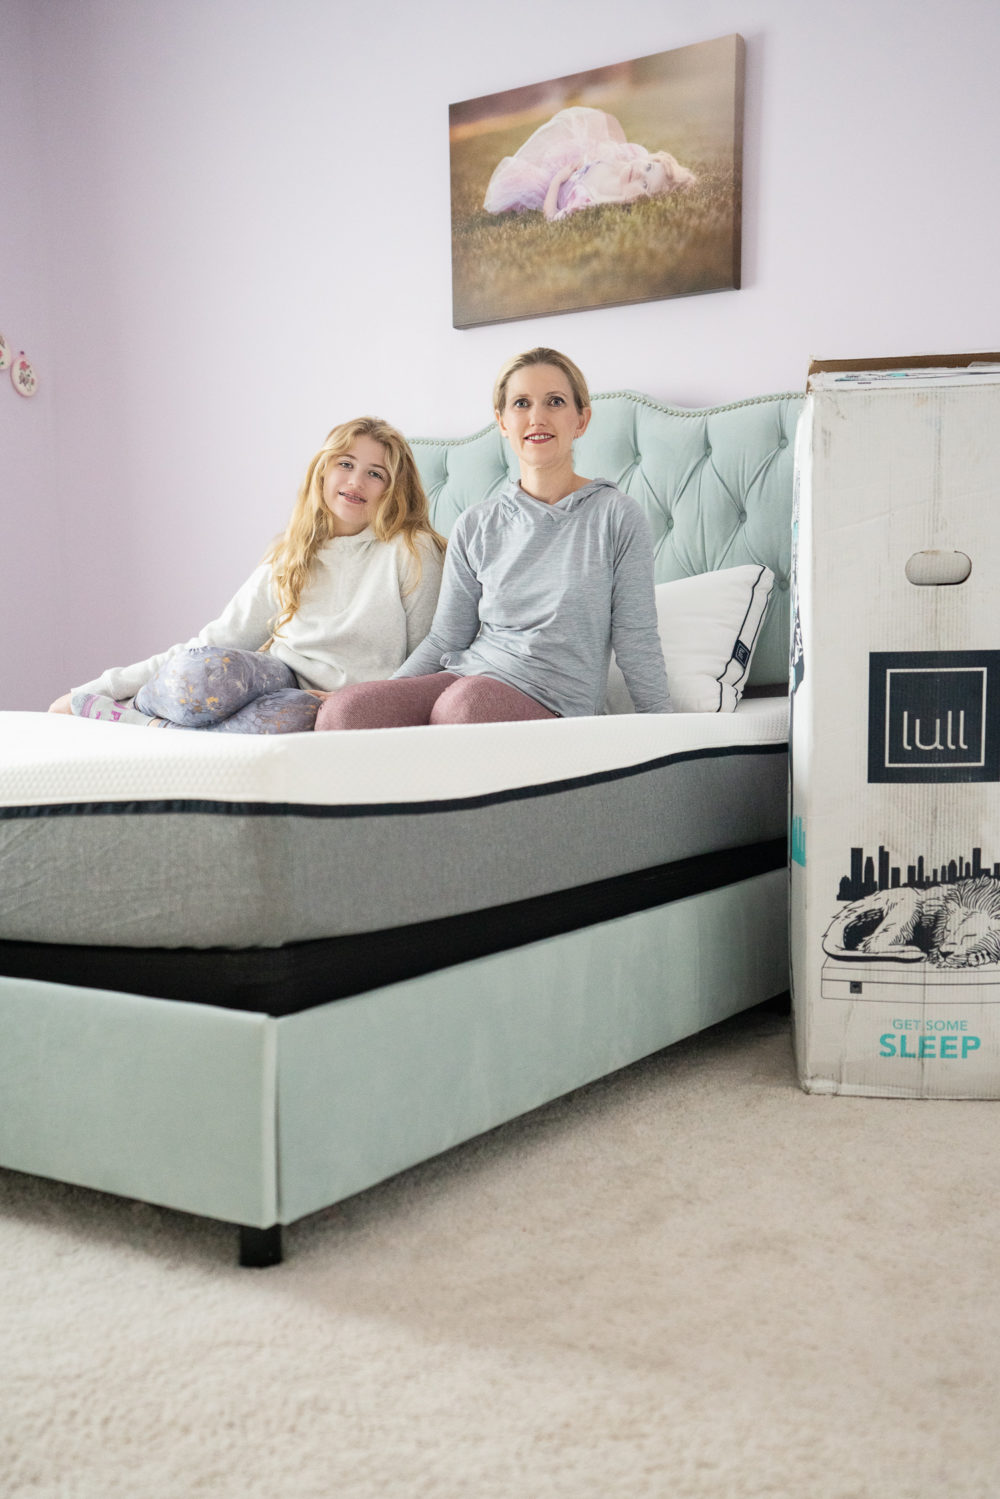 Lull Mattress Review | Lull Mattress | Best Bed in a Box